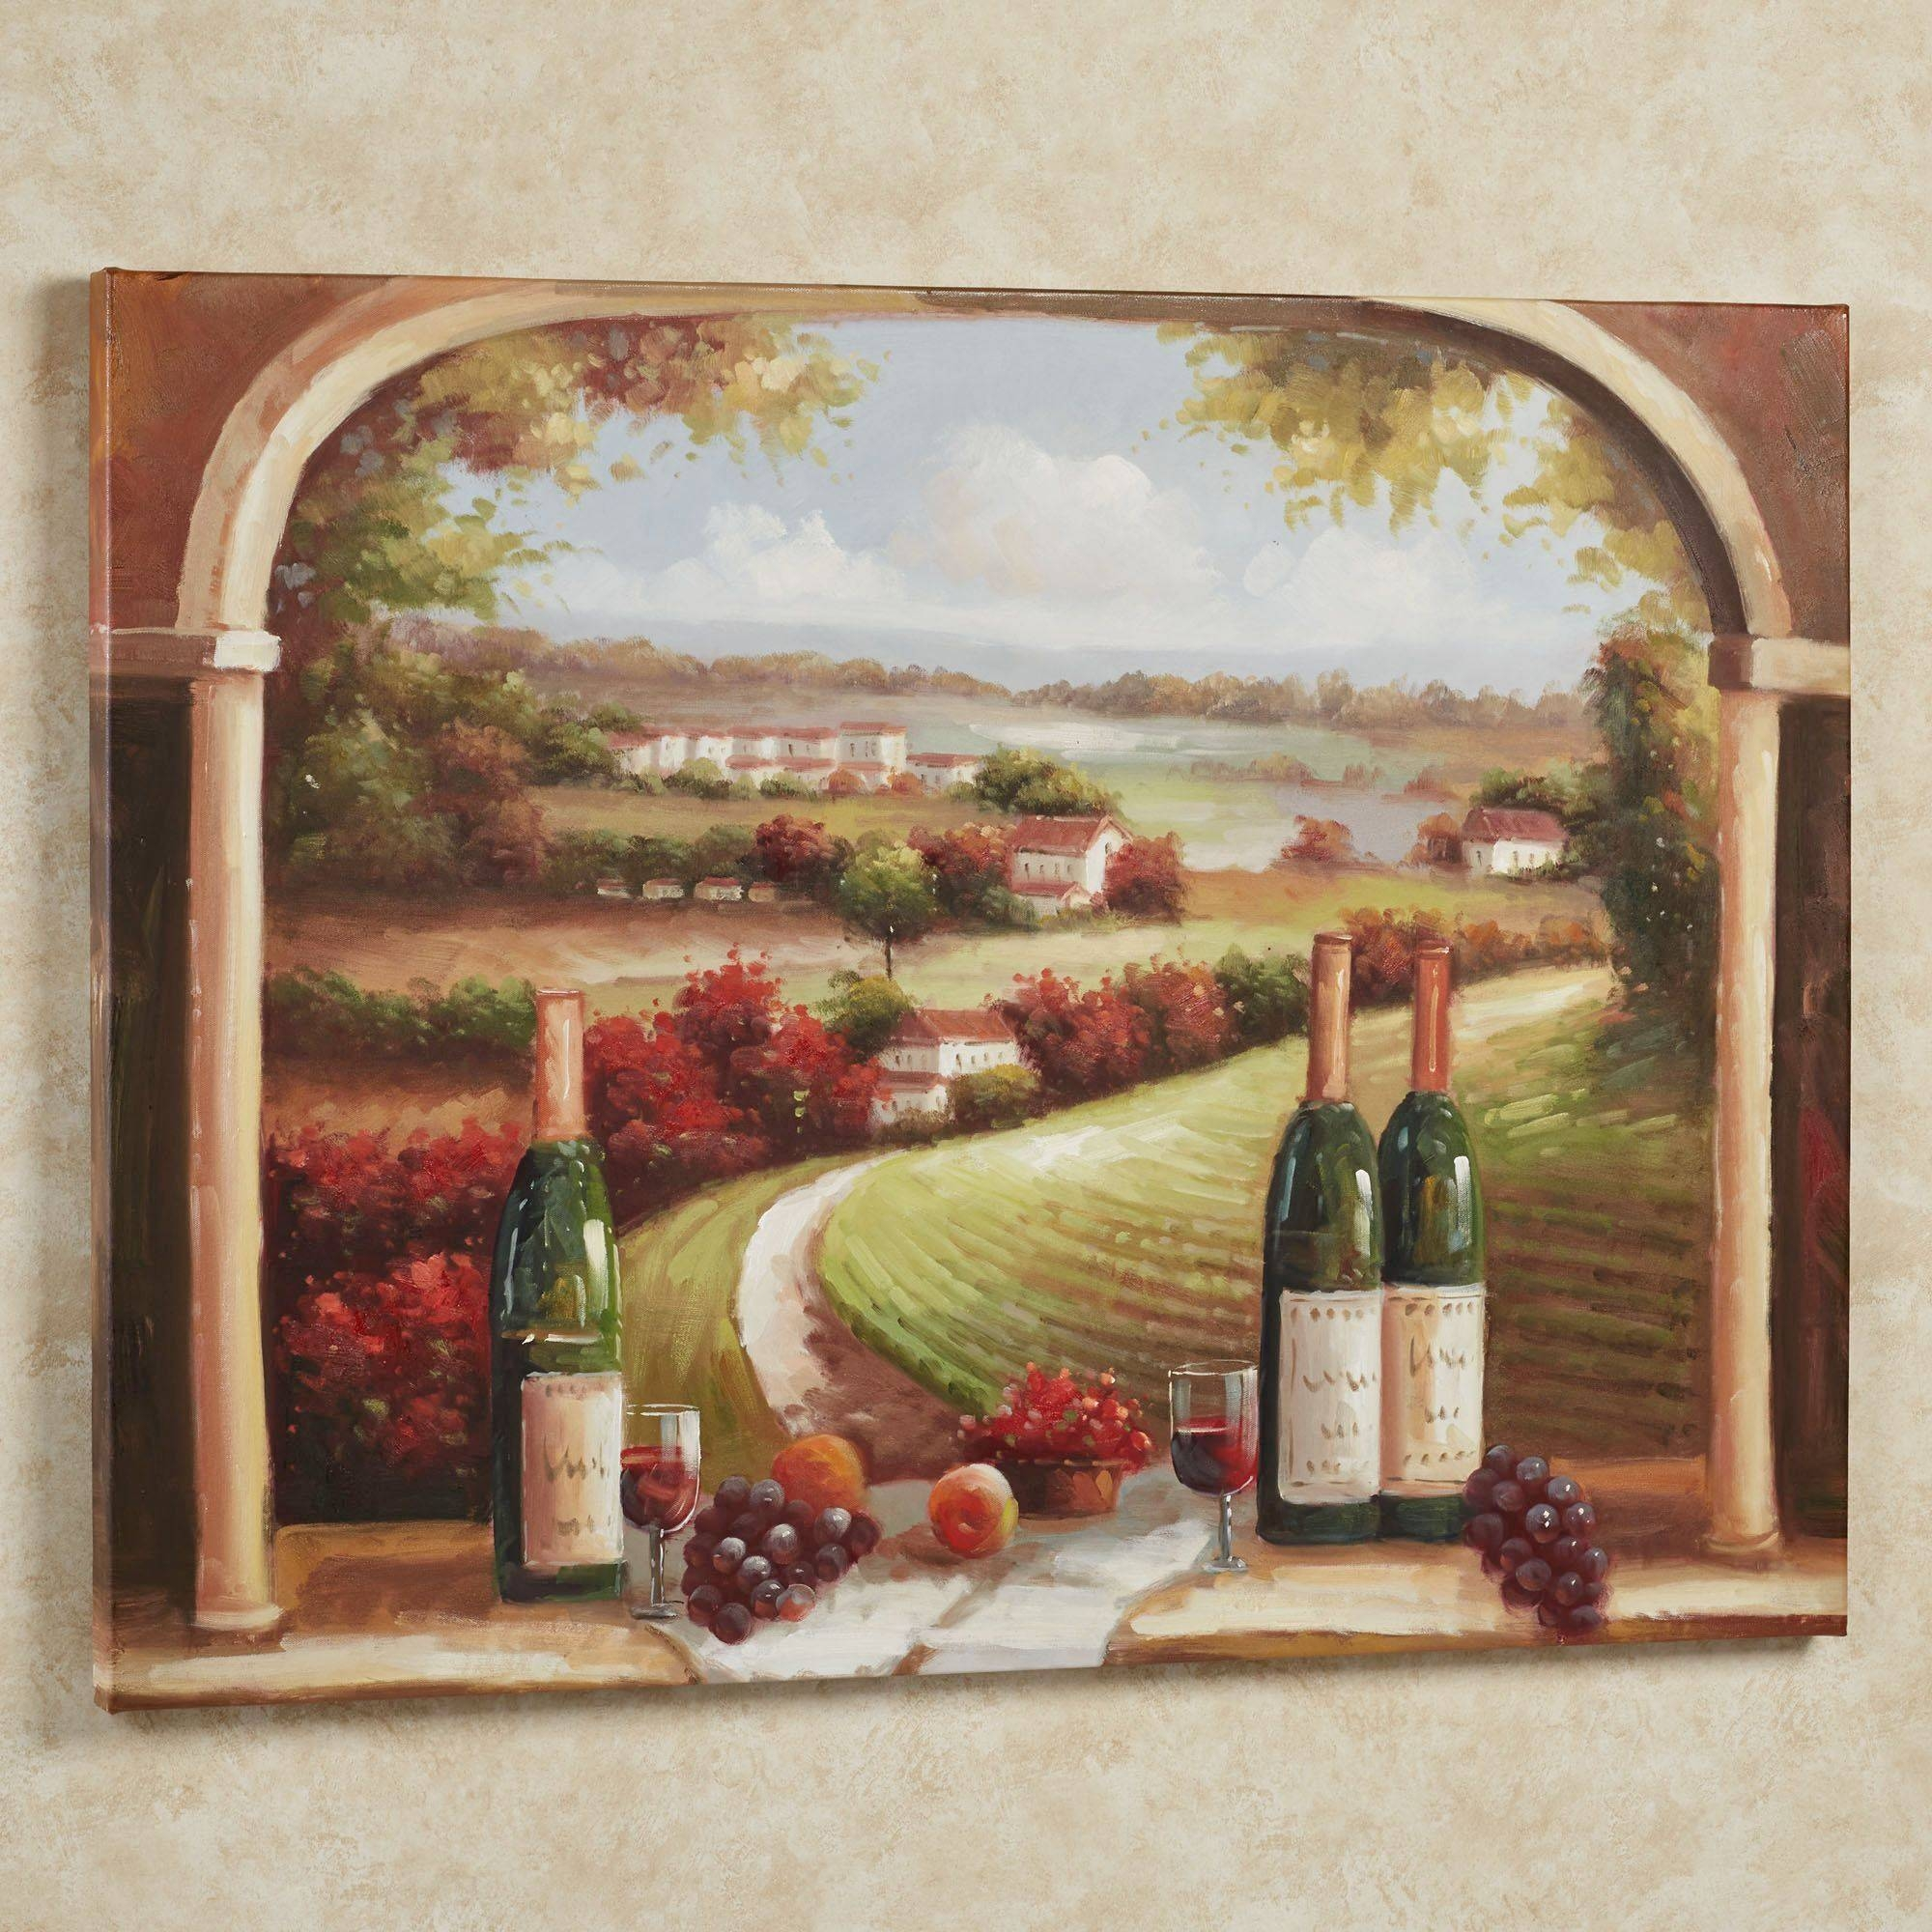 Kitchen And Dining Room Wall Art | Touch Of Class With Regard To Most Current Grape Wall Art (View 15 of 22)